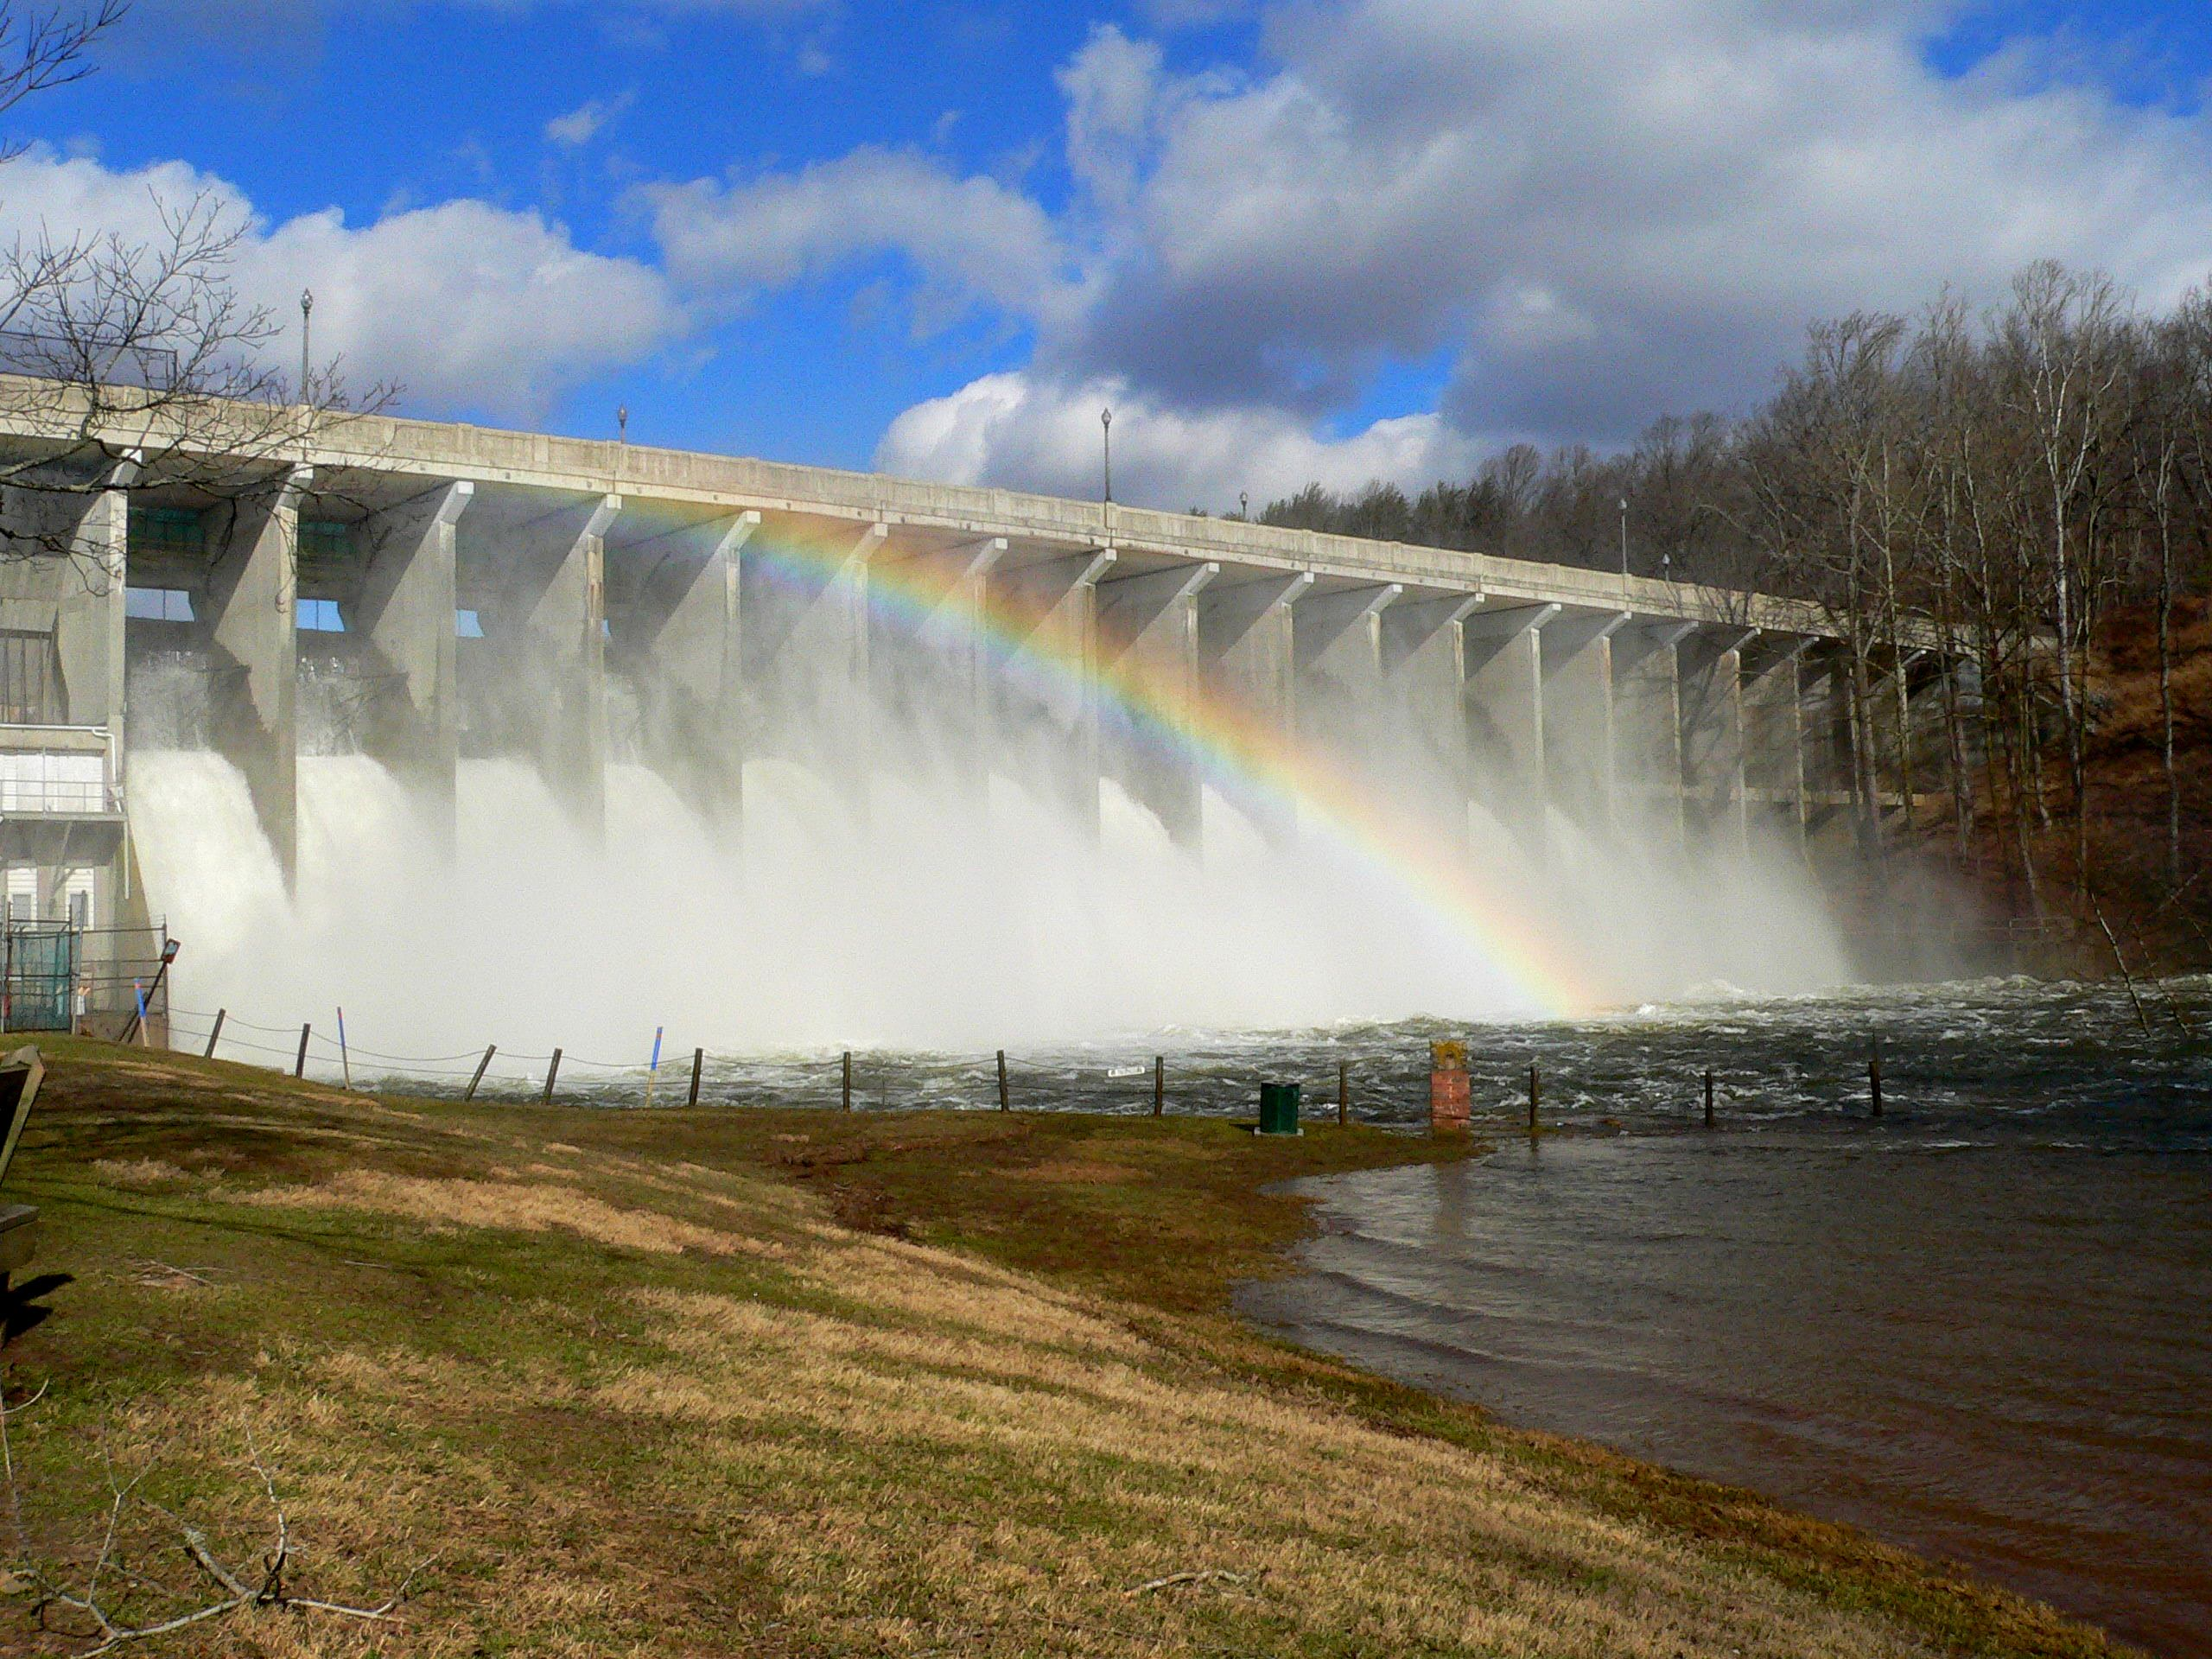 brighton dam rainbow over the gates